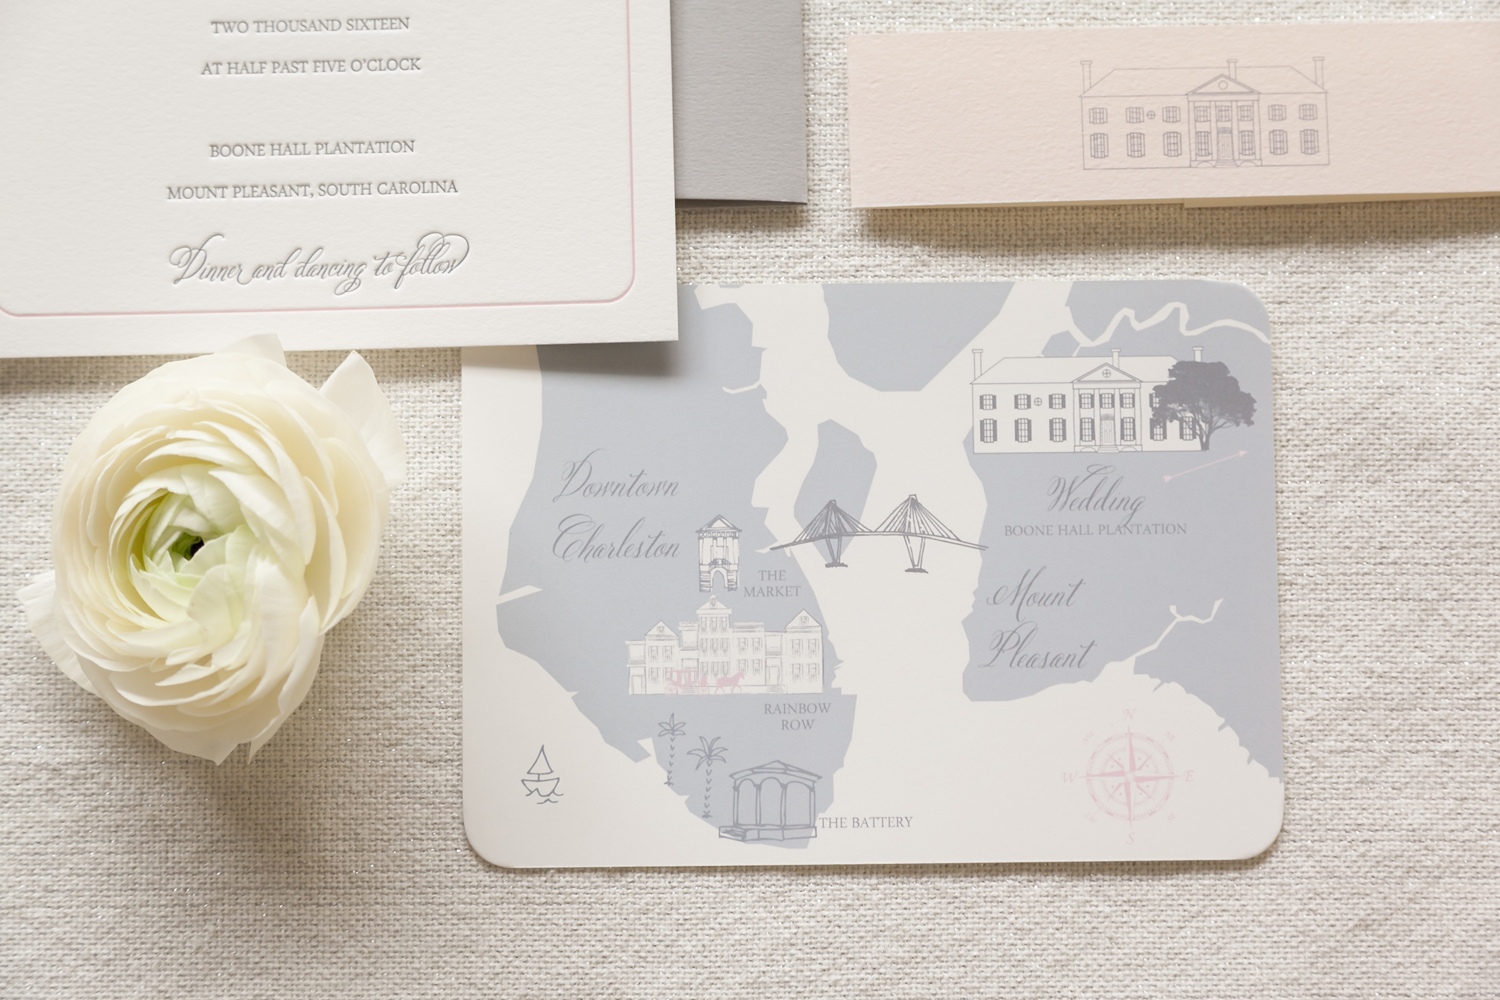 boone-hall-wedding-map